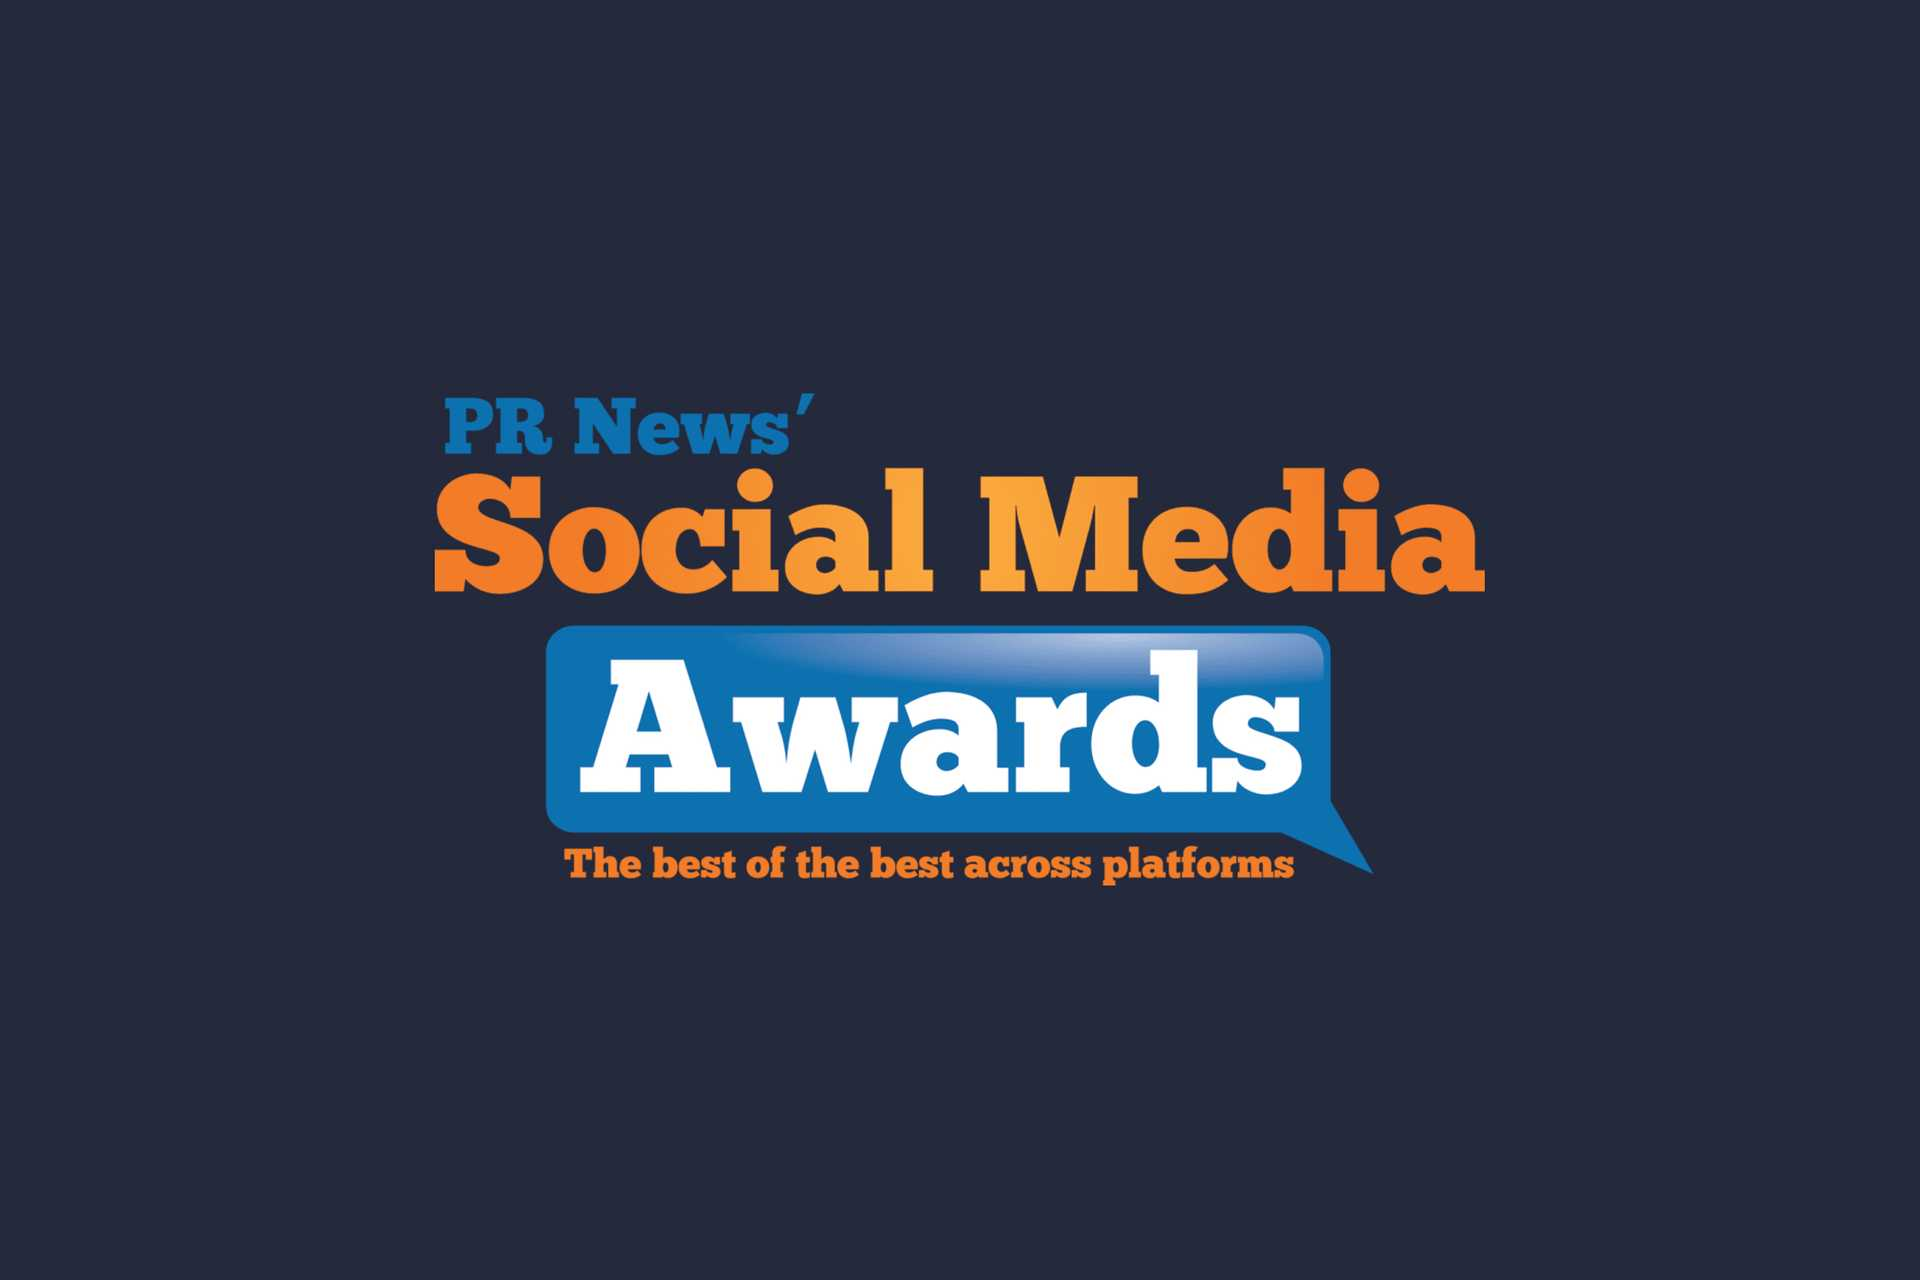 PR News Social Media Awards